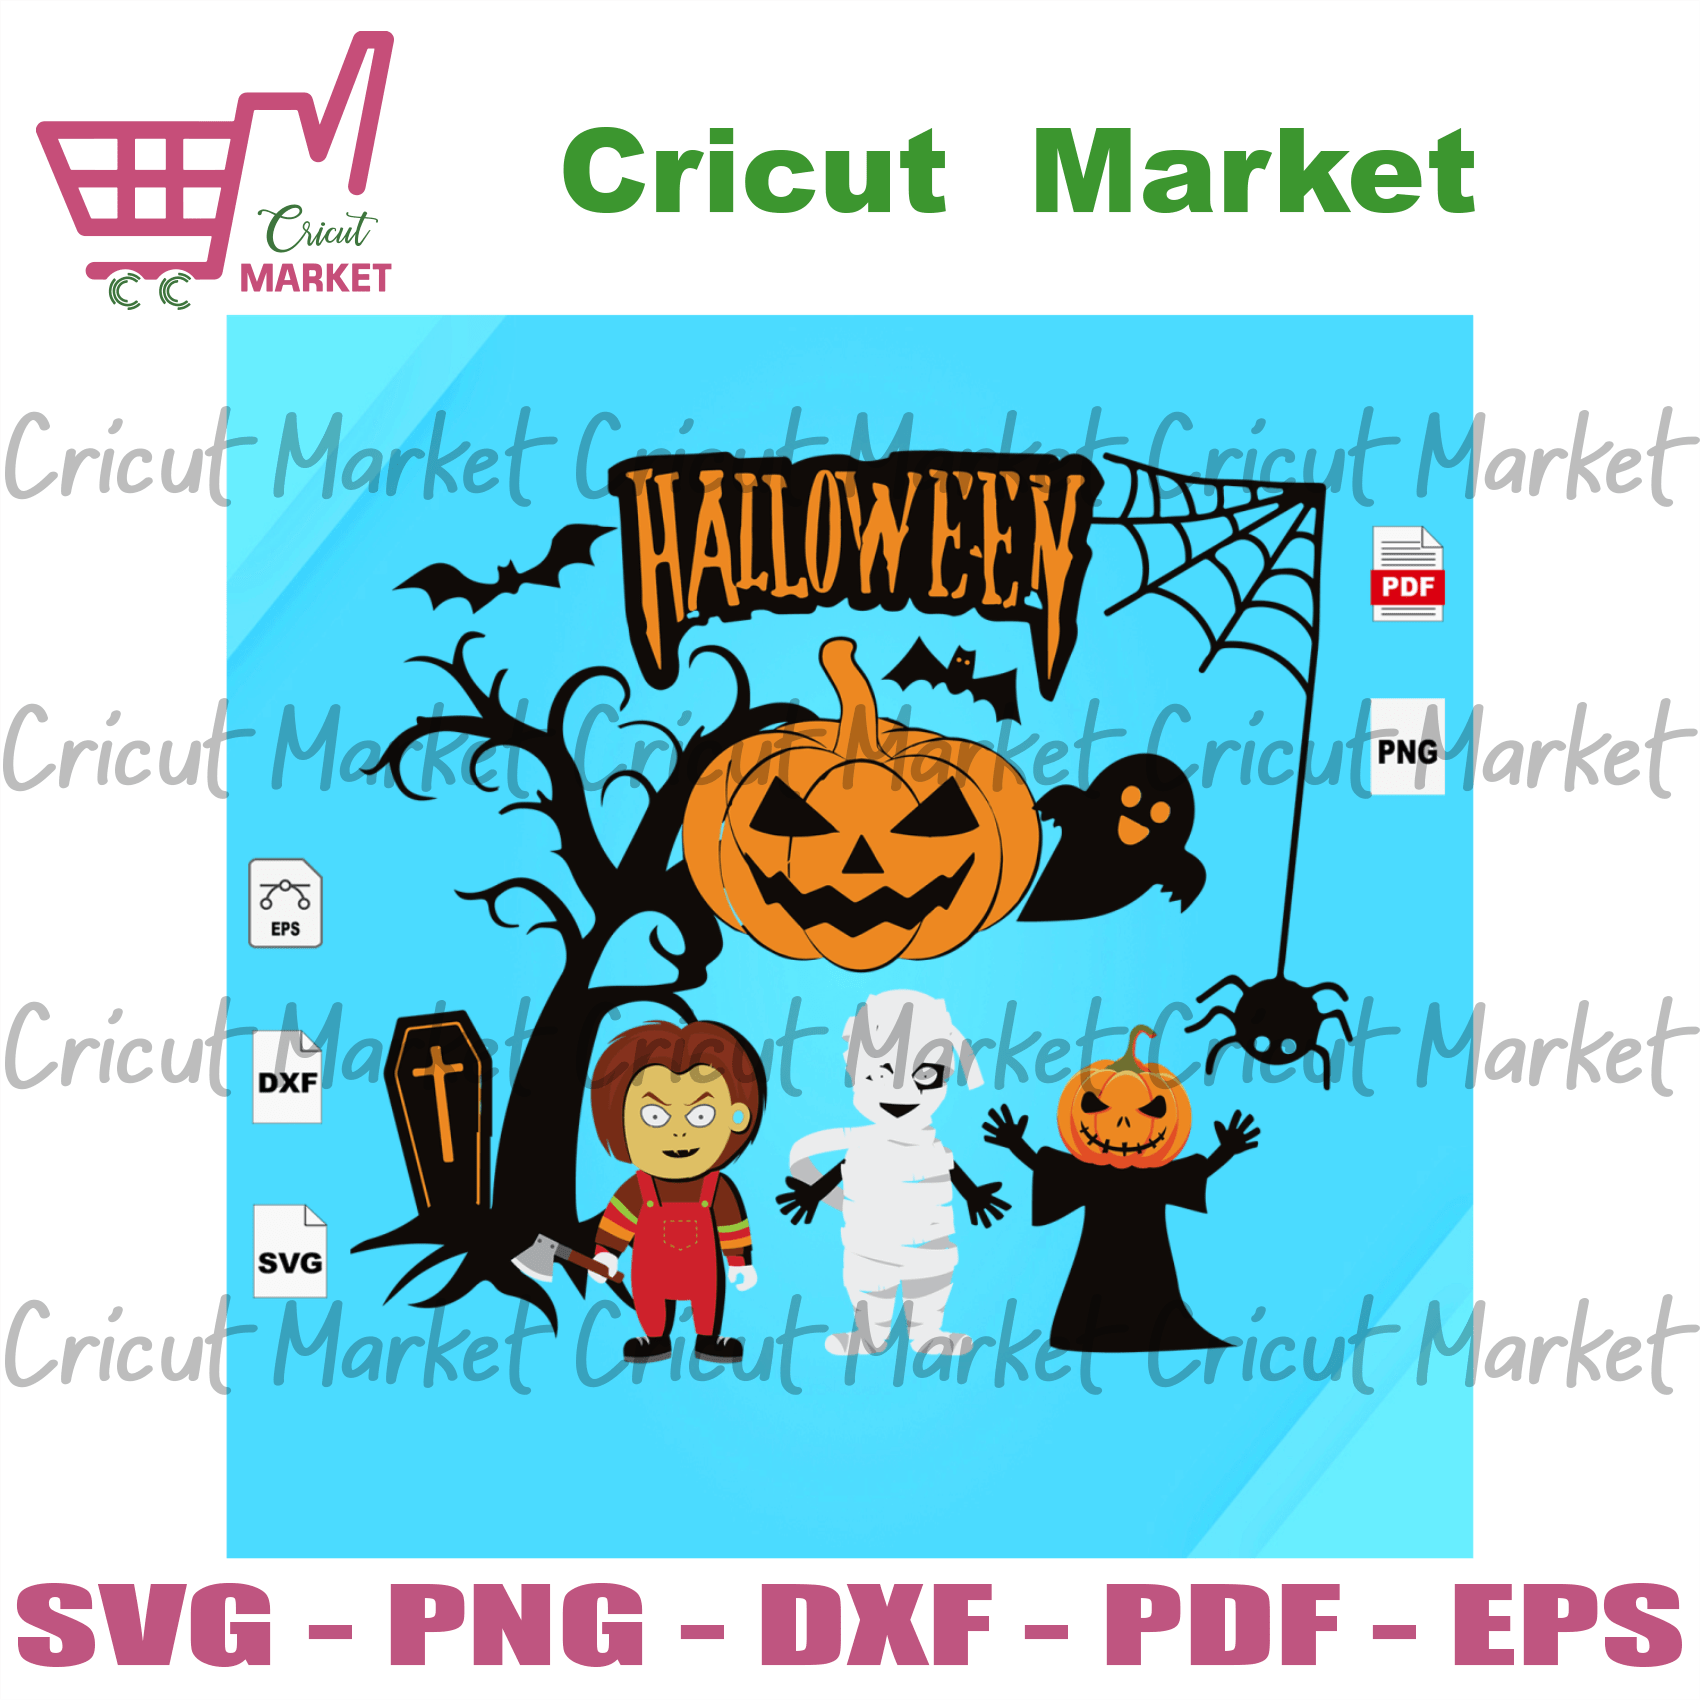 Halloween bundle svg, Halloween svg, Halloween vector clipart, Halloween gift, Halloween party, Halloween decor, Halloween shirt svg, Halloween background, Halloween ideas, Party decor, Funny Halloween, - Cricut Market